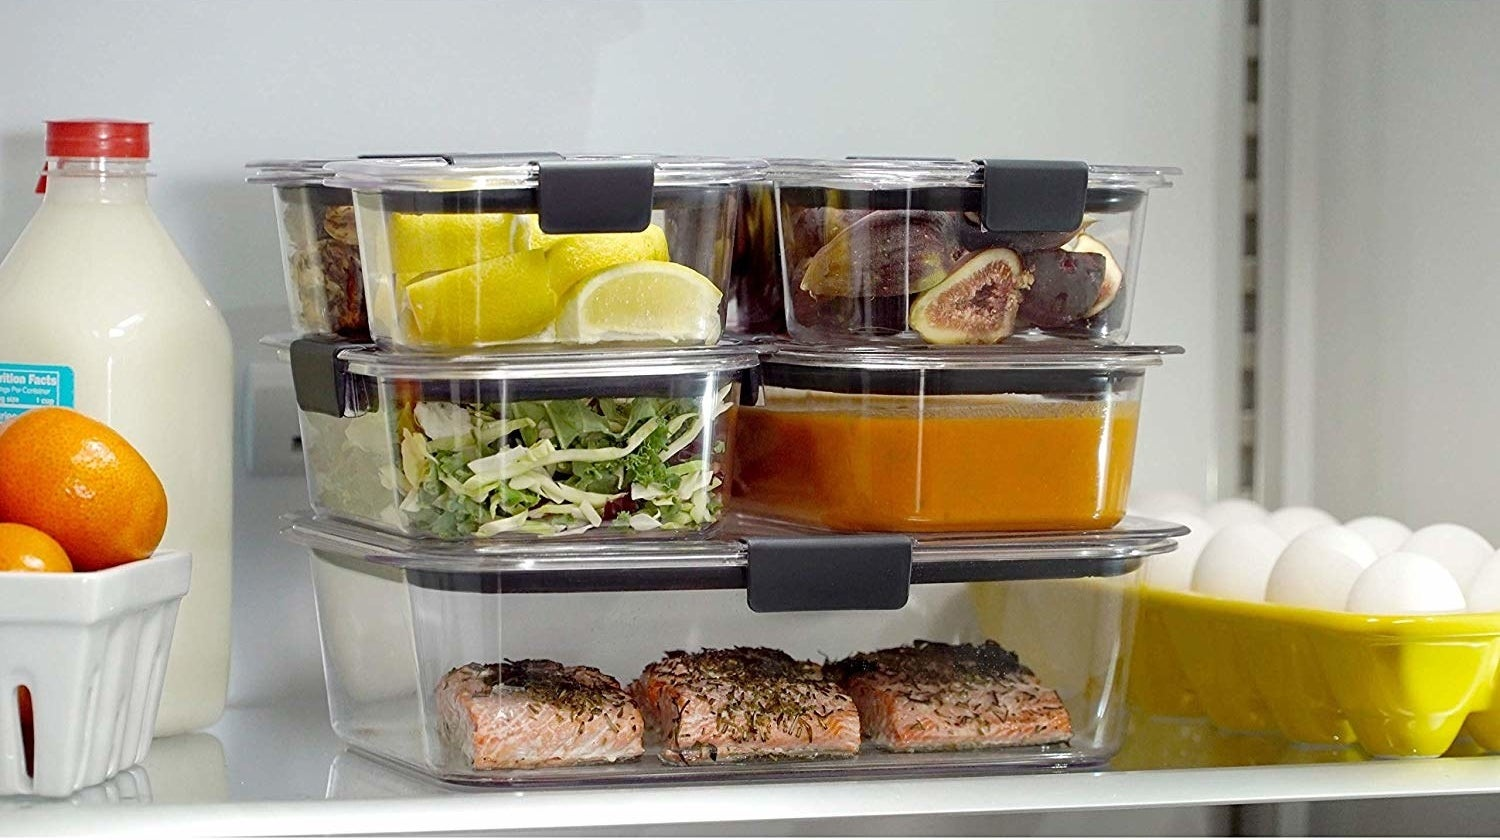 stack of clear food storage containers in a fridge